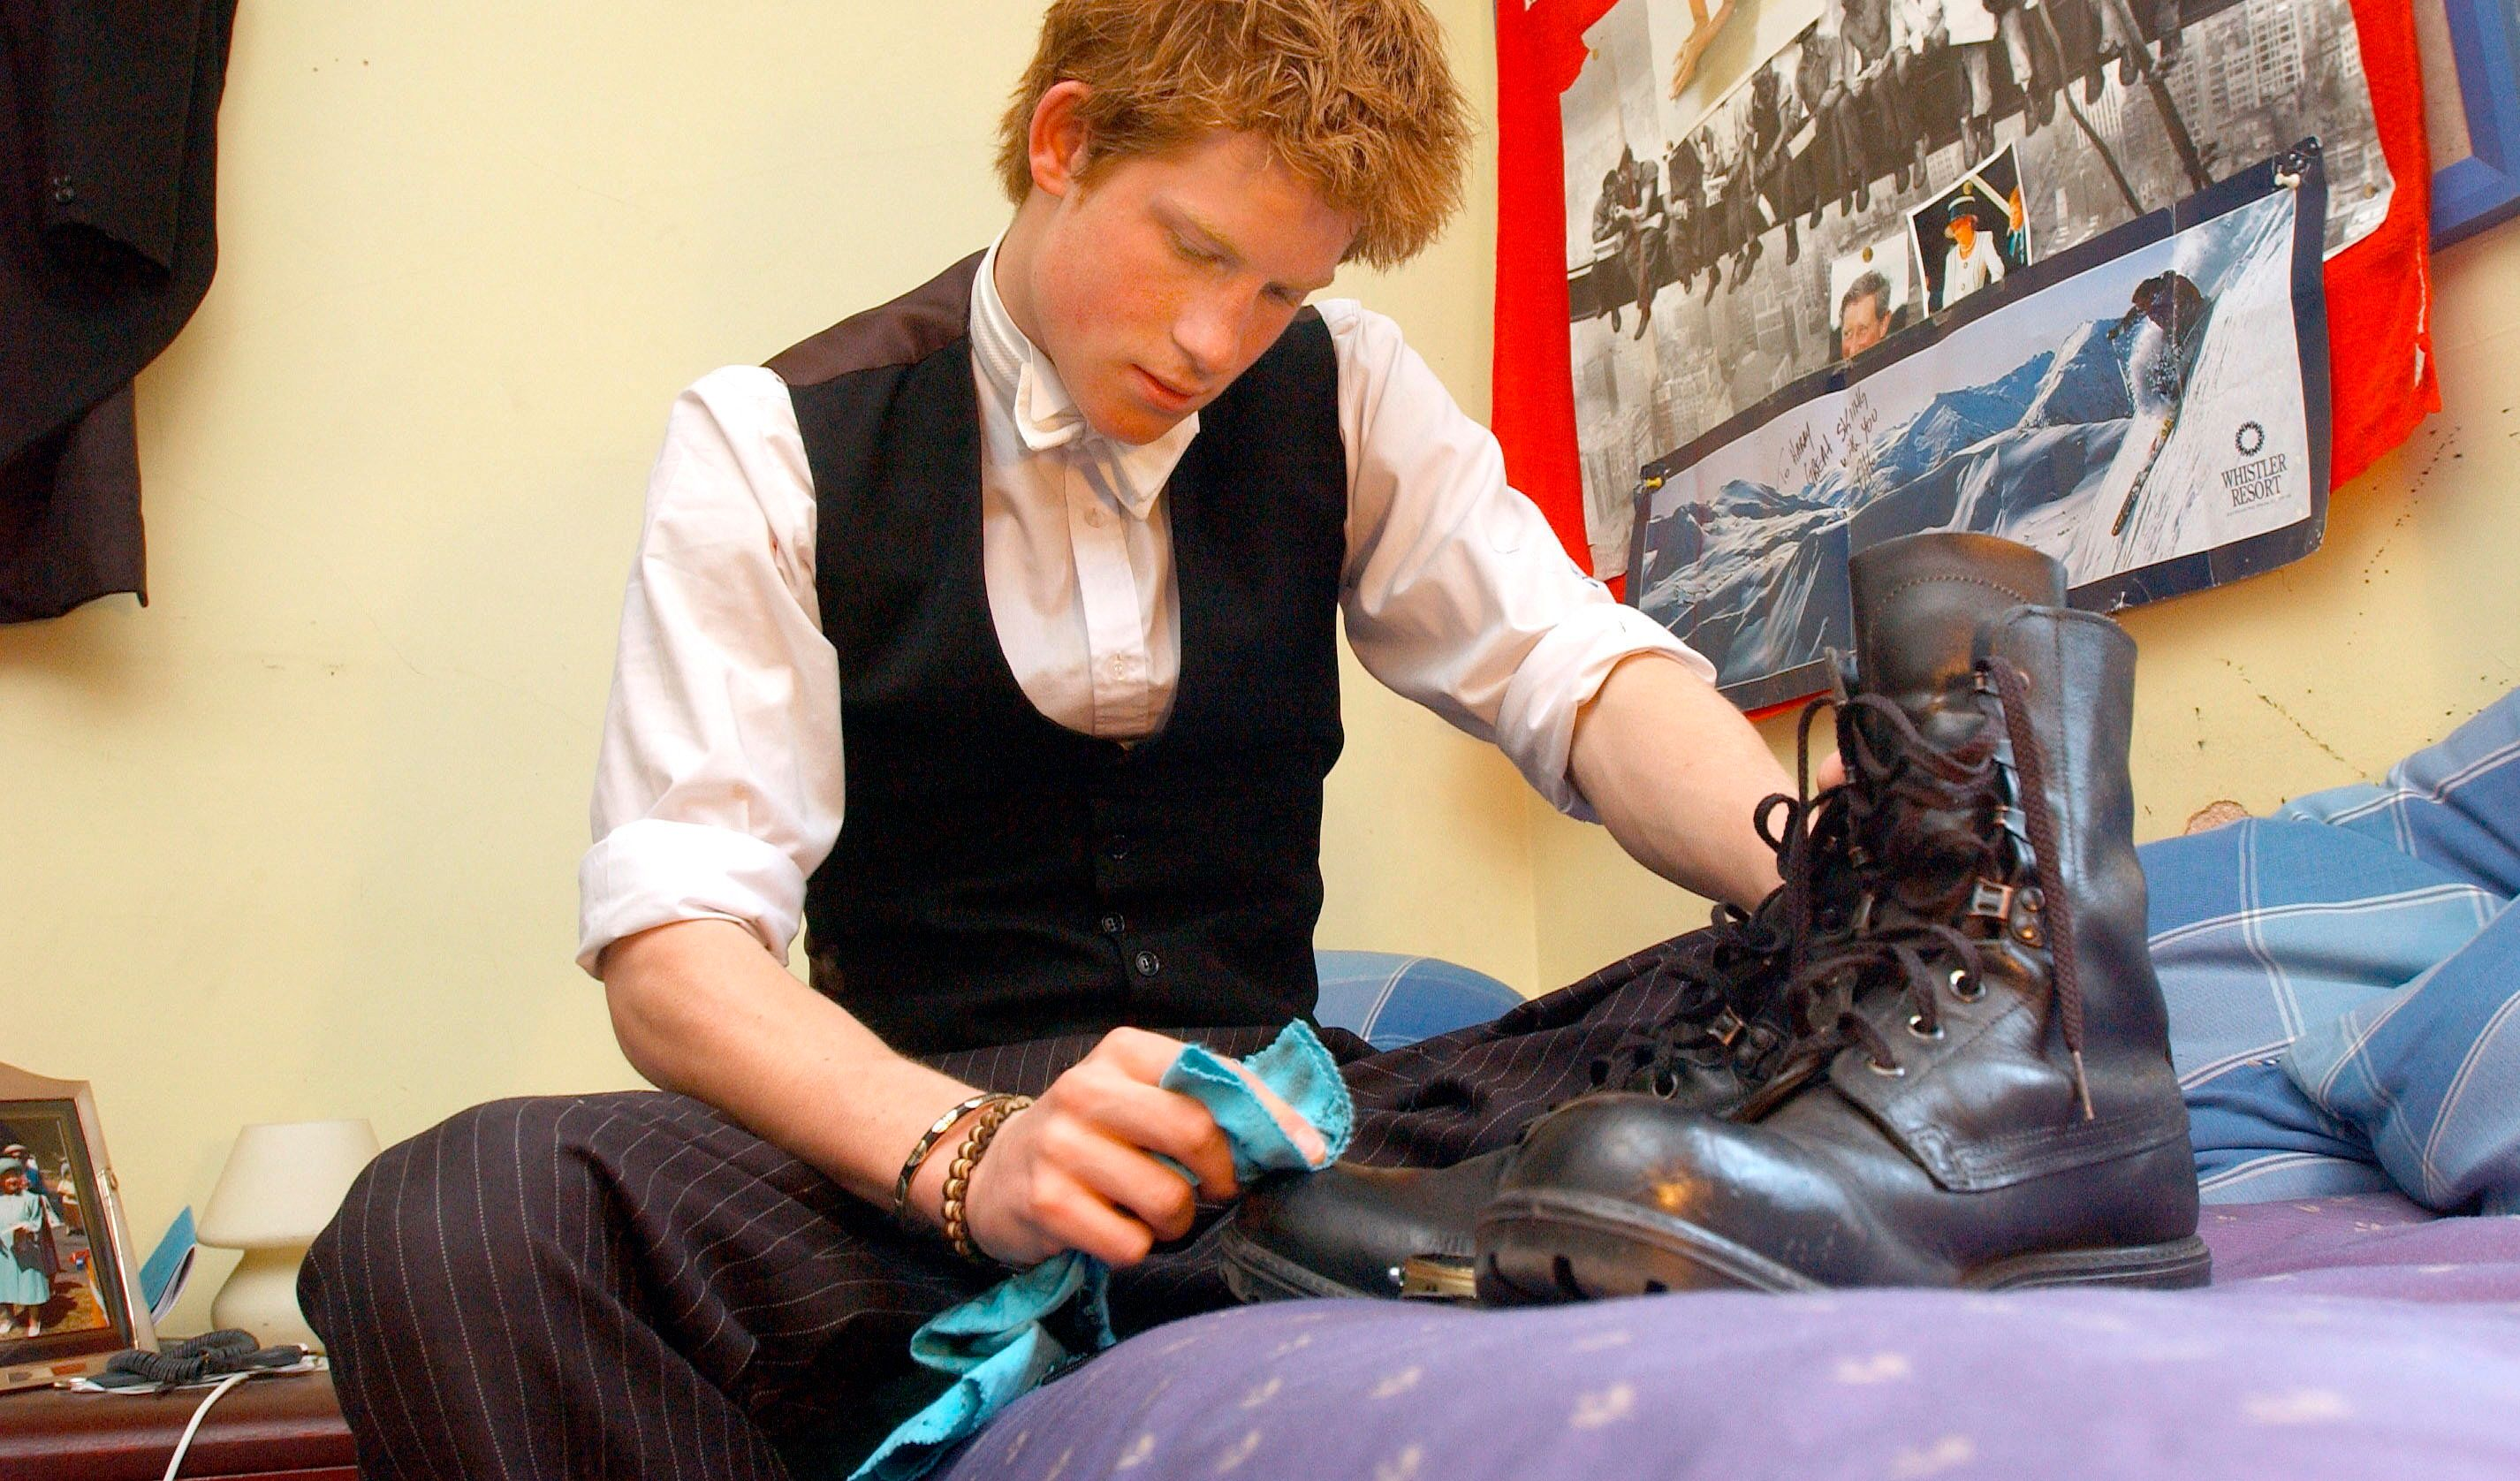 Prince Harry polishes the army boots he wears when participating in the Military Combined Cadet Force.